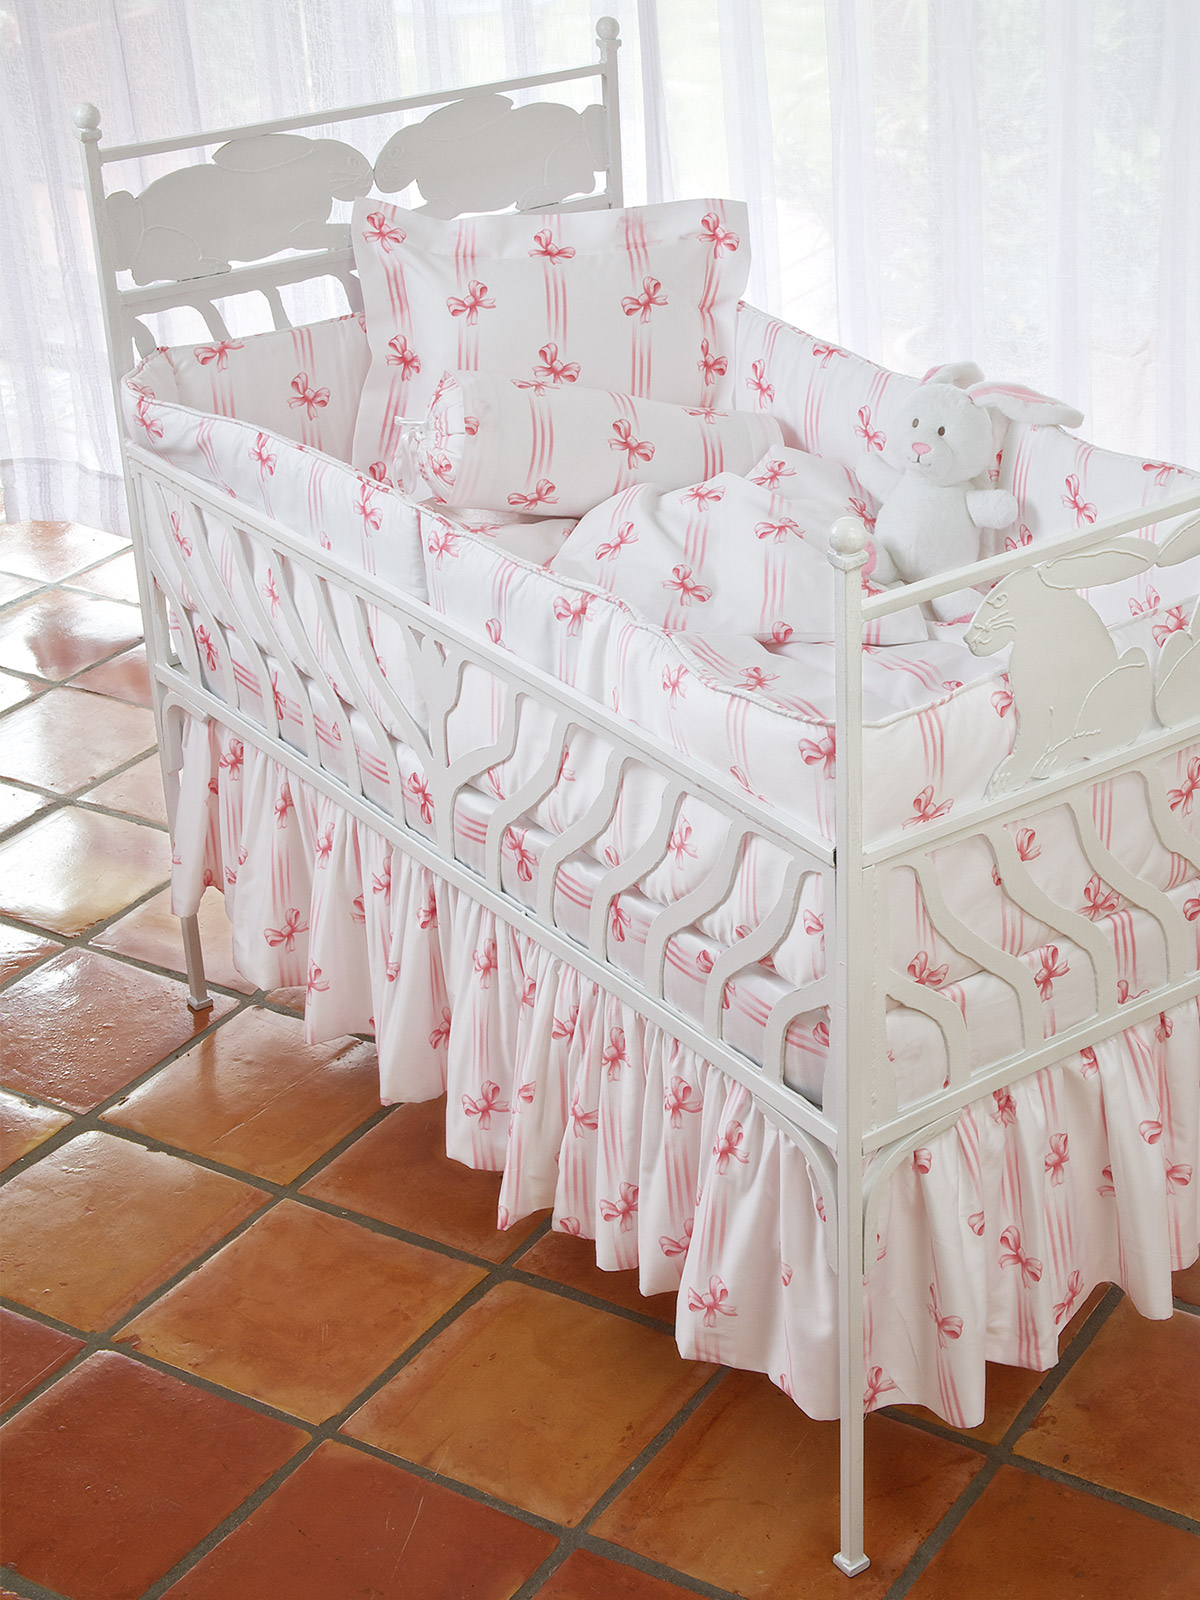 Tiffany_Crib_Pink_2253.jpg